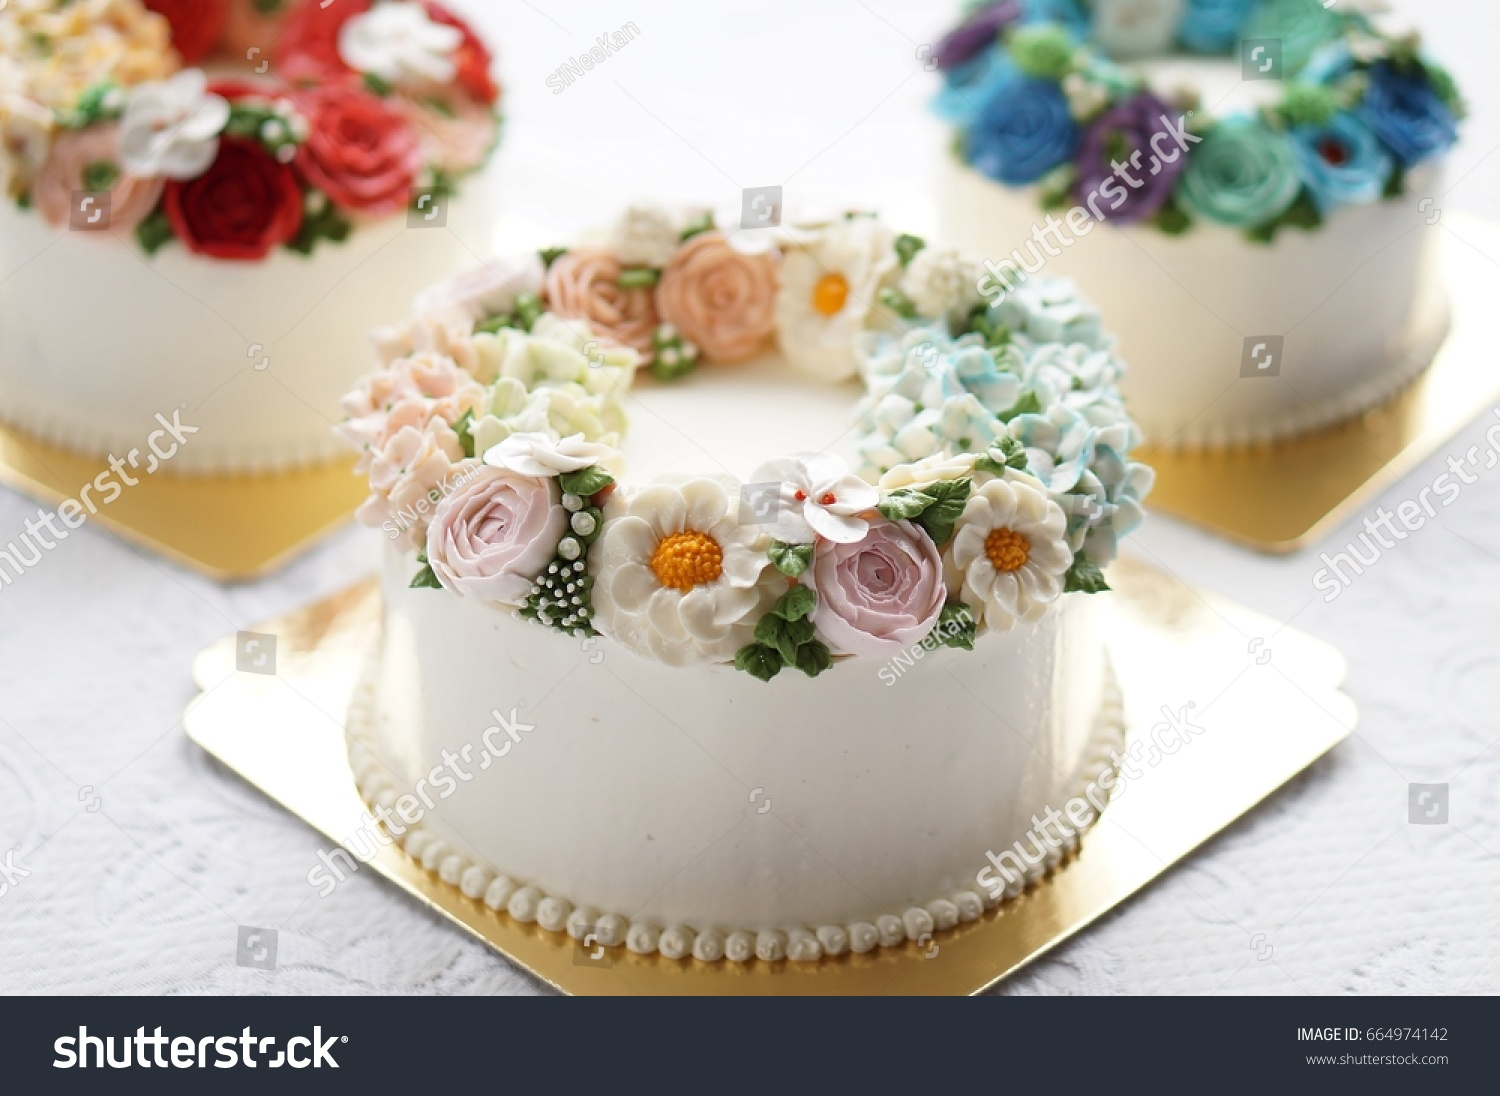 Birthday cake flowers on lace white stock photo edit now 664974142 birthday cake with flowers on lace white background izmirmasajfo